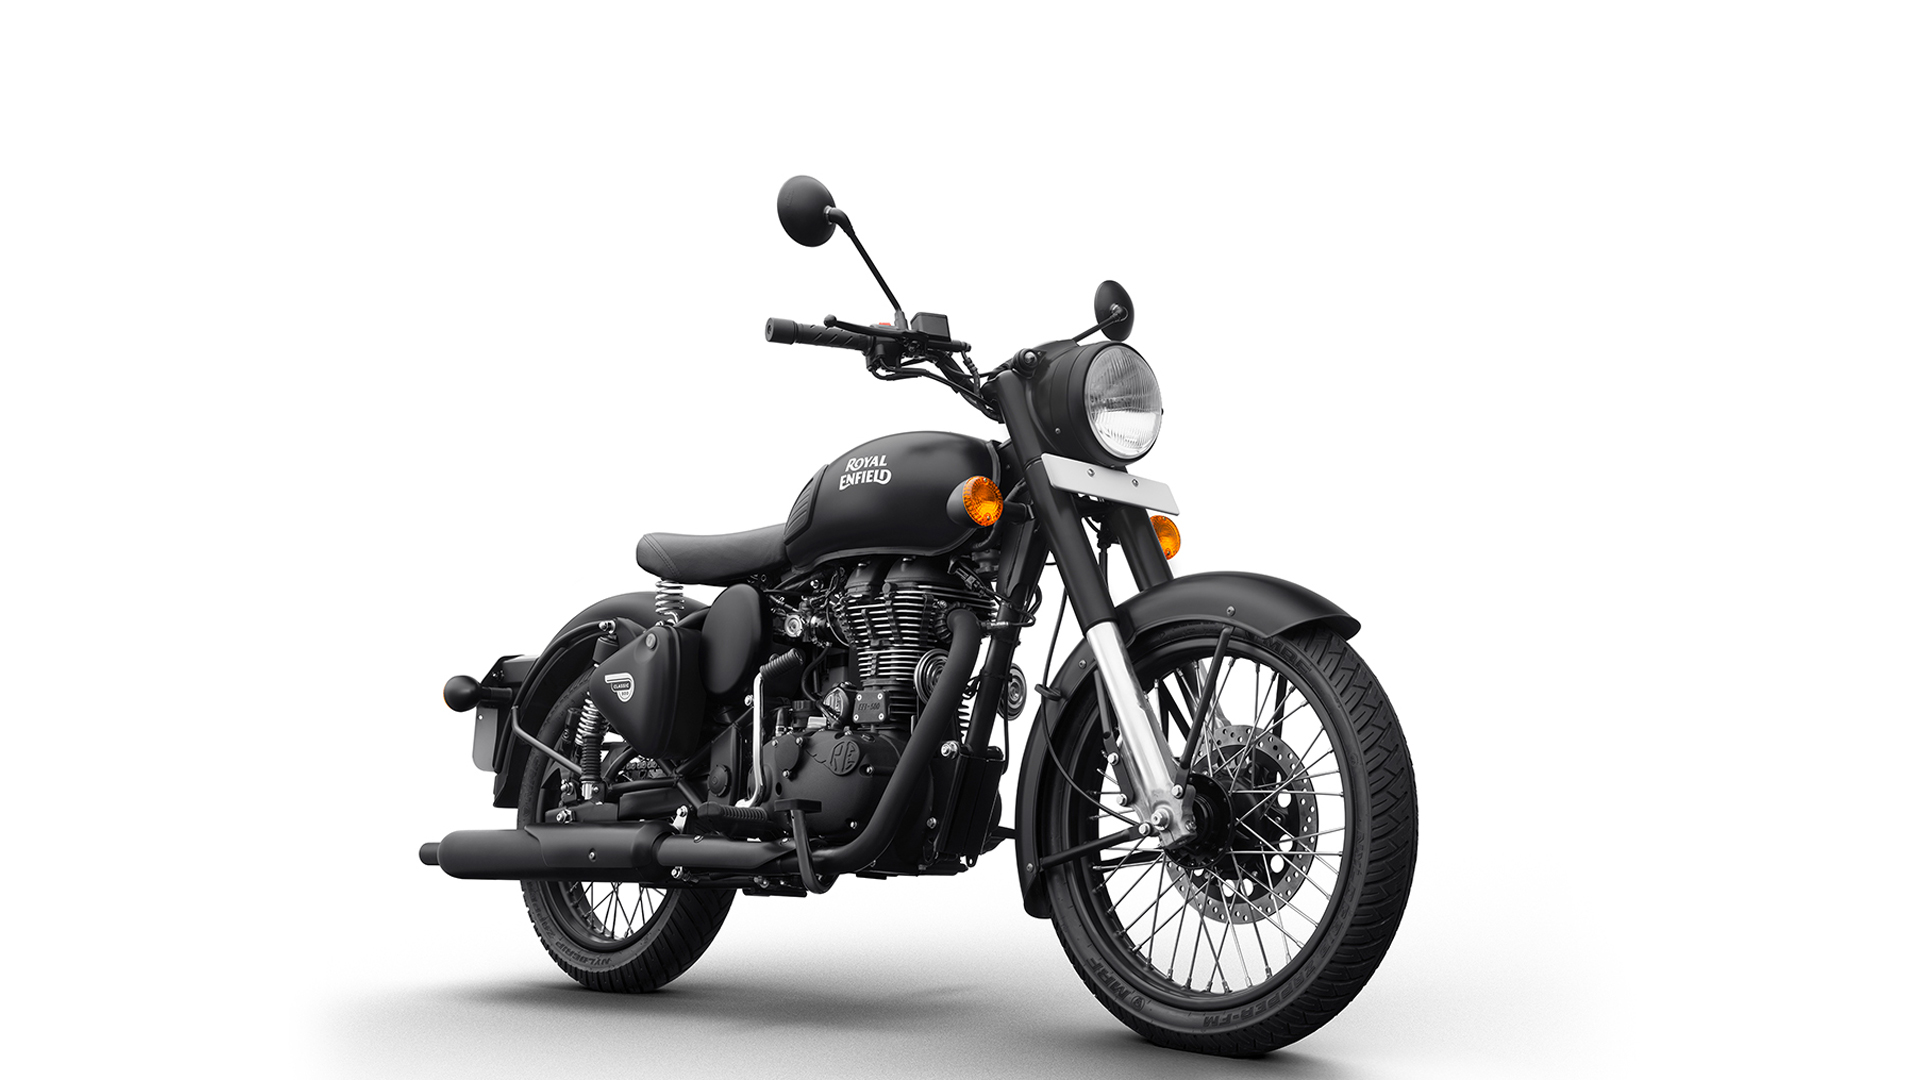 royal enfield classic 500 2017 stealth black price mileage reviews specification gallery. Black Bedroom Furniture Sets. Home Design Ideas